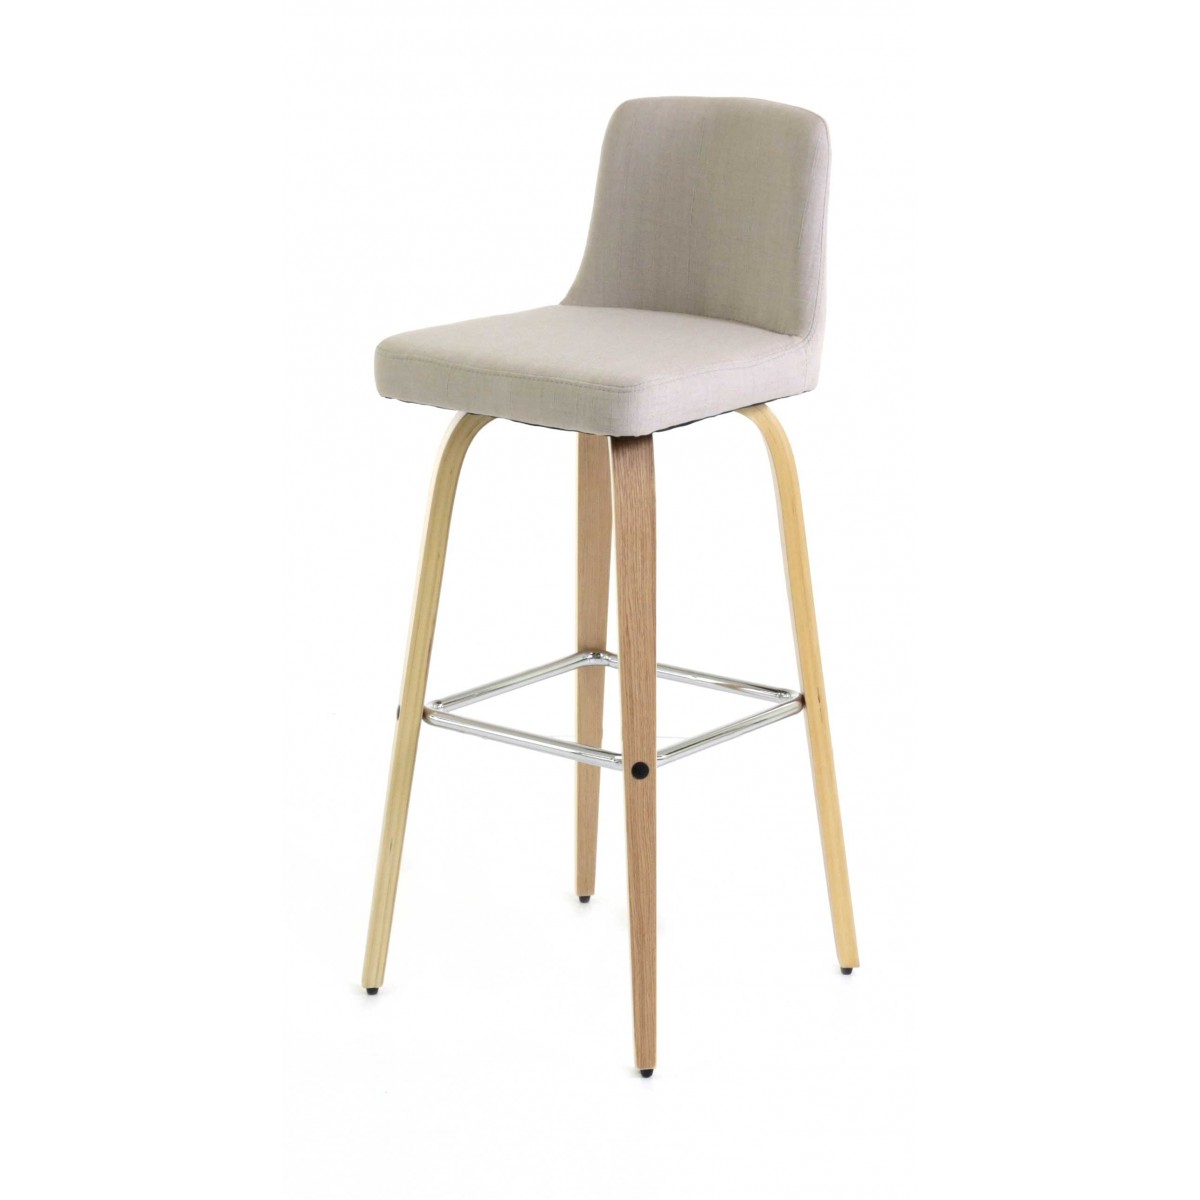 Songmics Lot De 2 Tabourets De Bar Stool Avis Chaise De Bar Tissu Comparatif Quels Sont Les